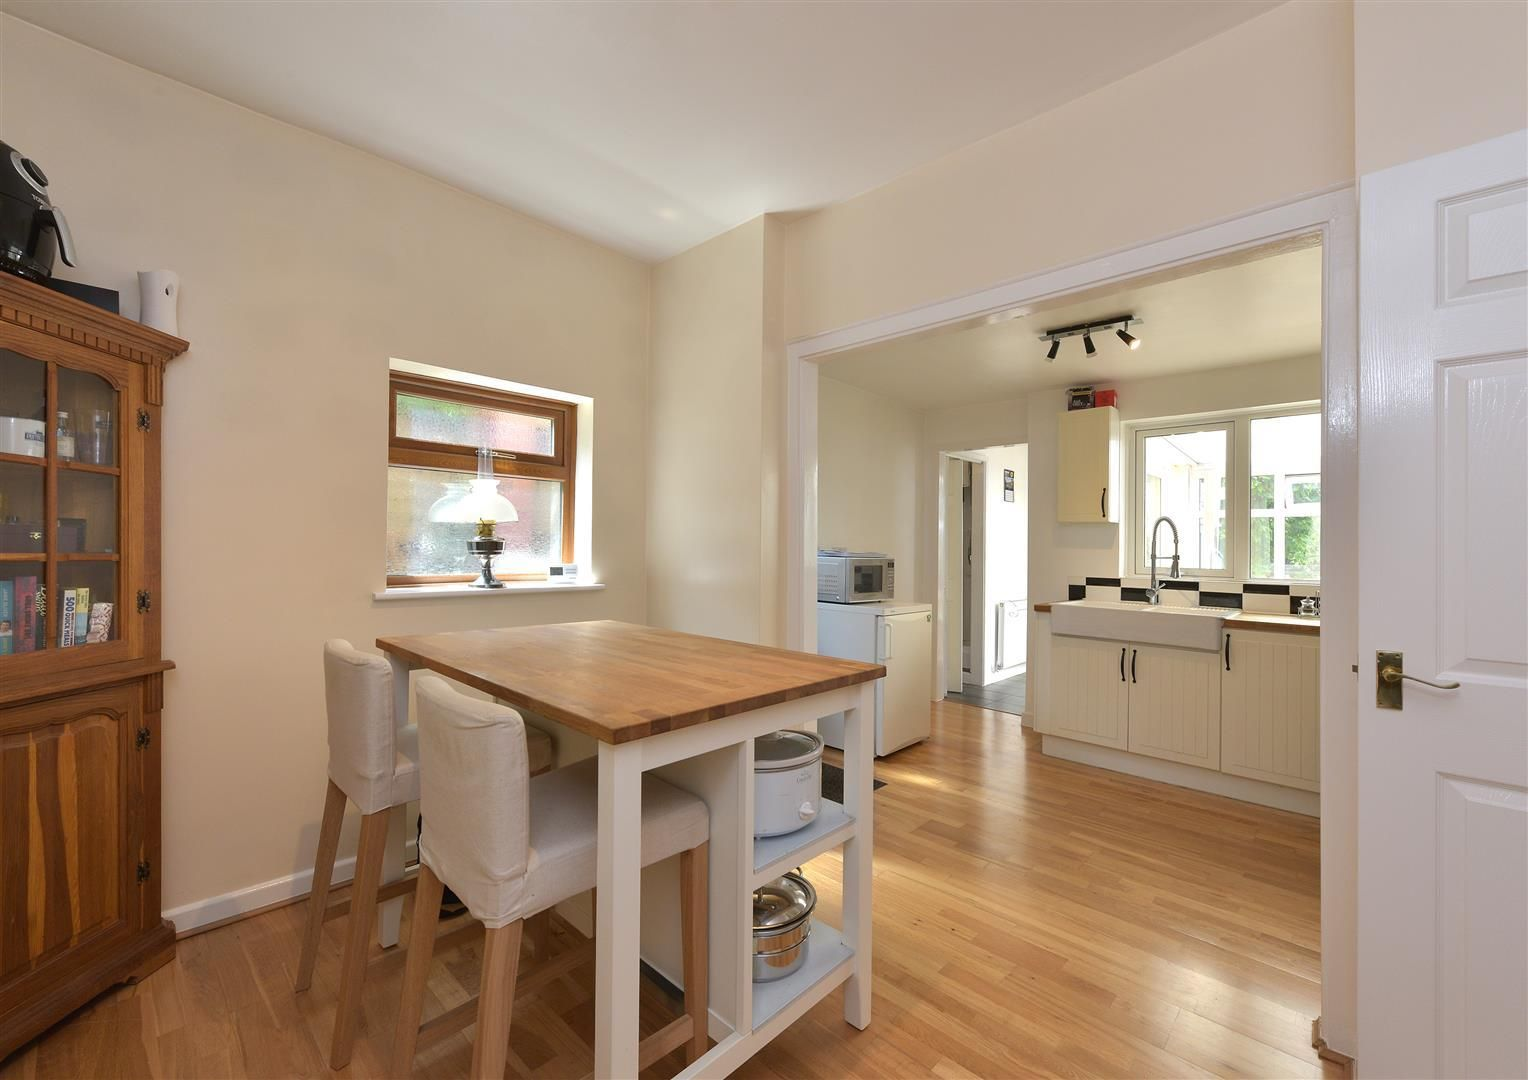 2 bed detached for sale in Hunnington  - Property Image 5